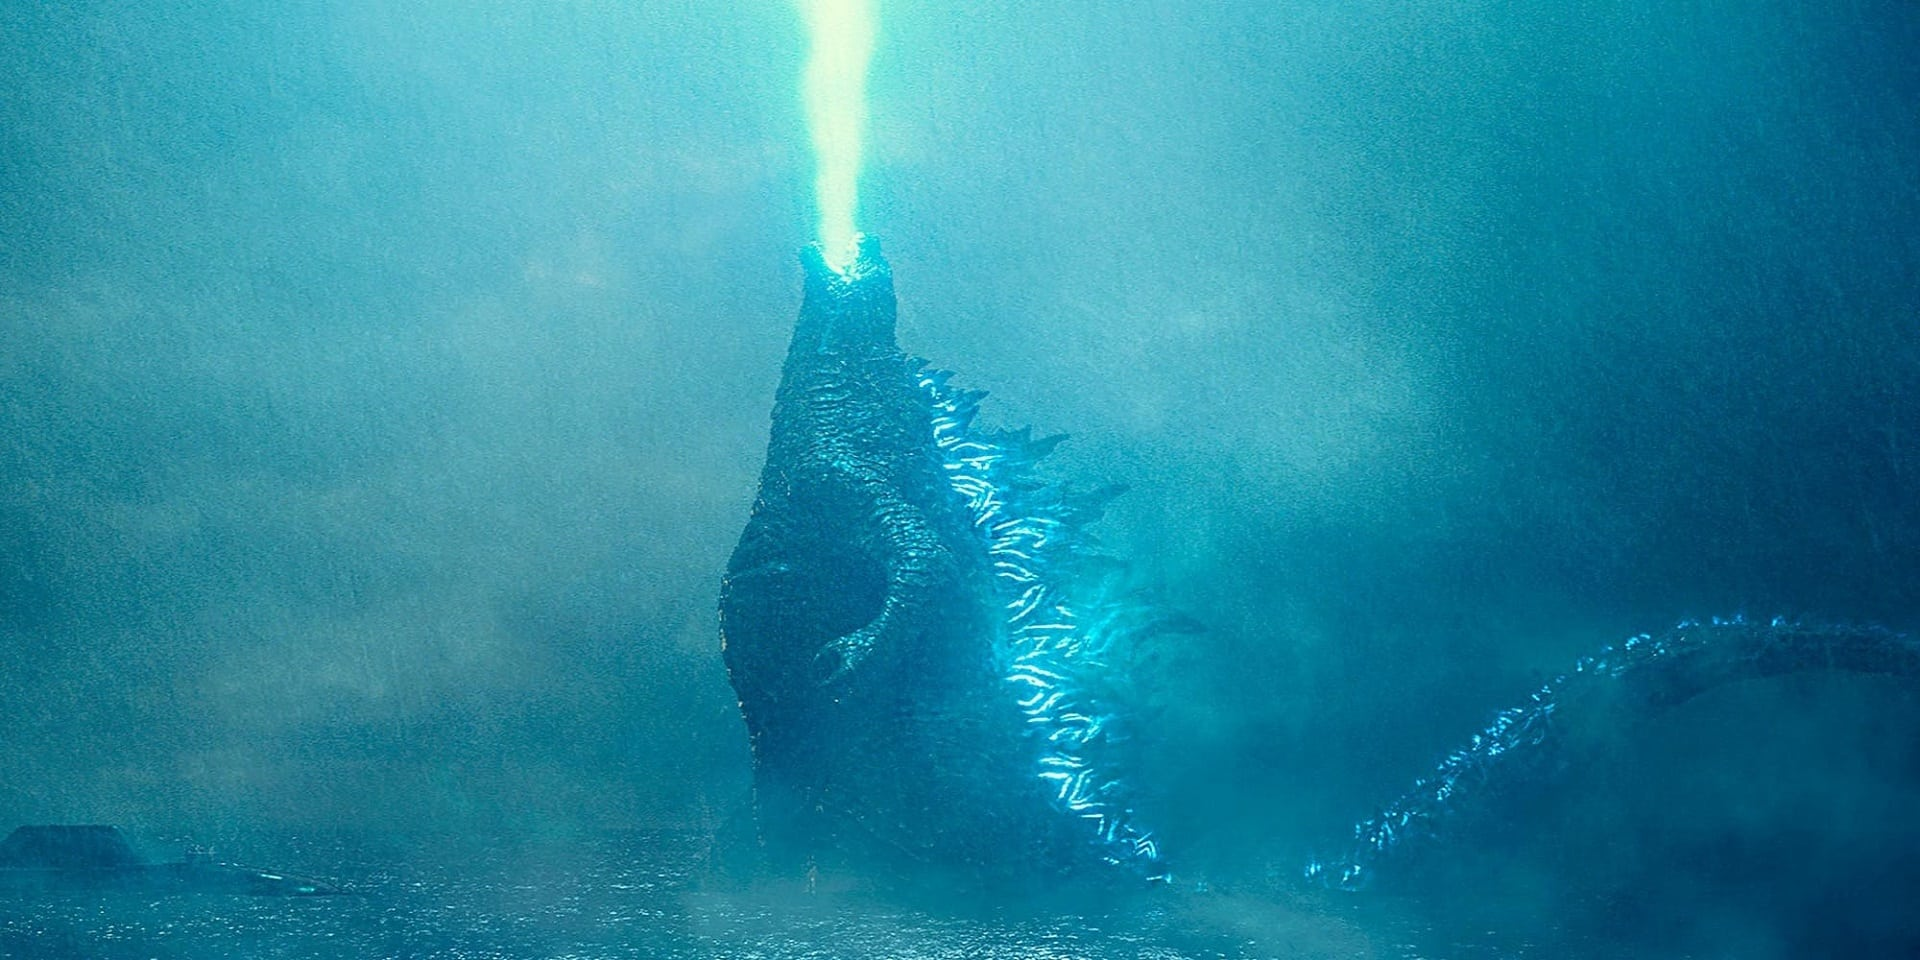 Godzilla II: King of The Monsters - ecco il nuovo poster in attesa del trailer